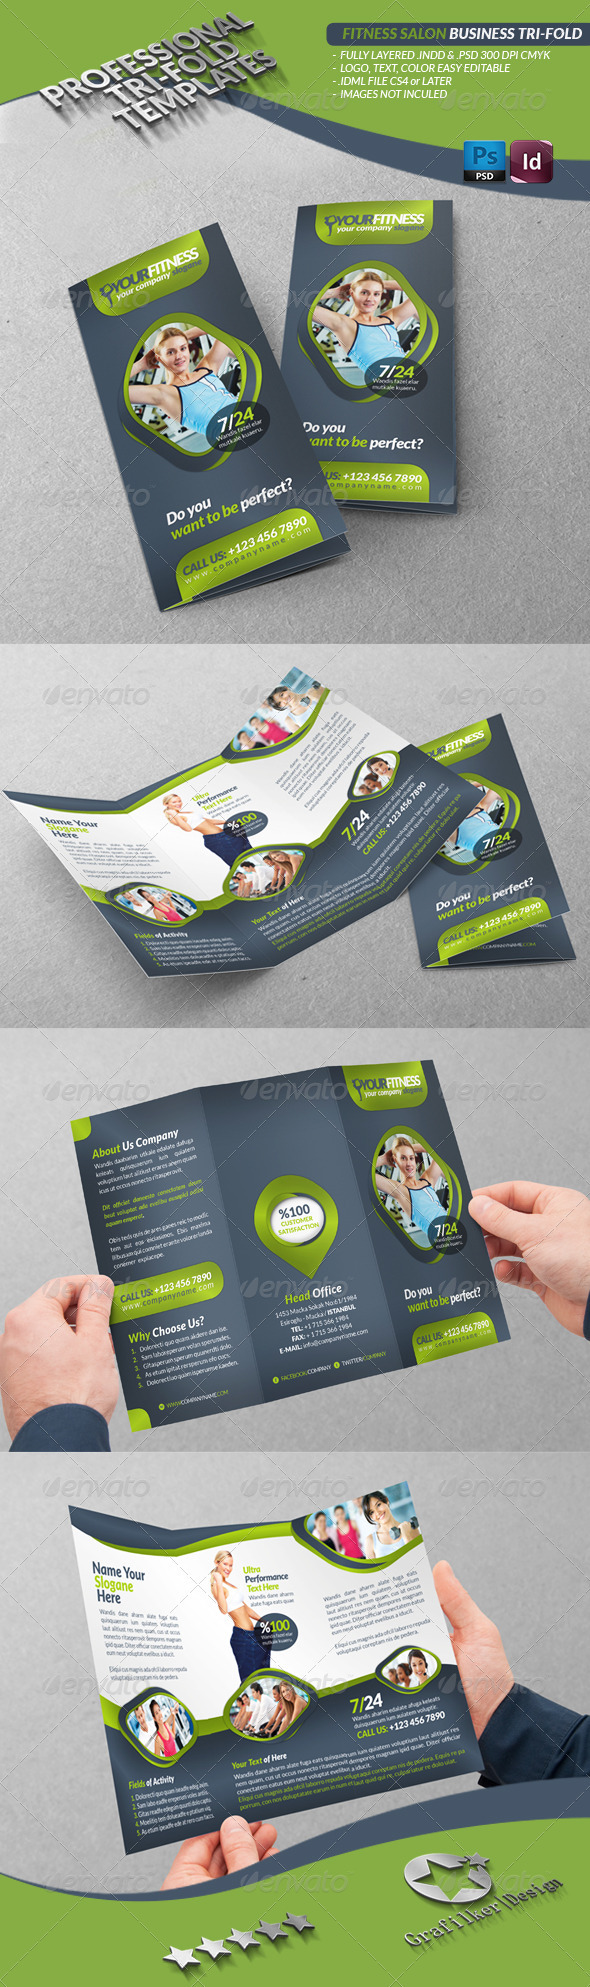 Fitness Salon Business Tri-Fold - Brochures Print Templates